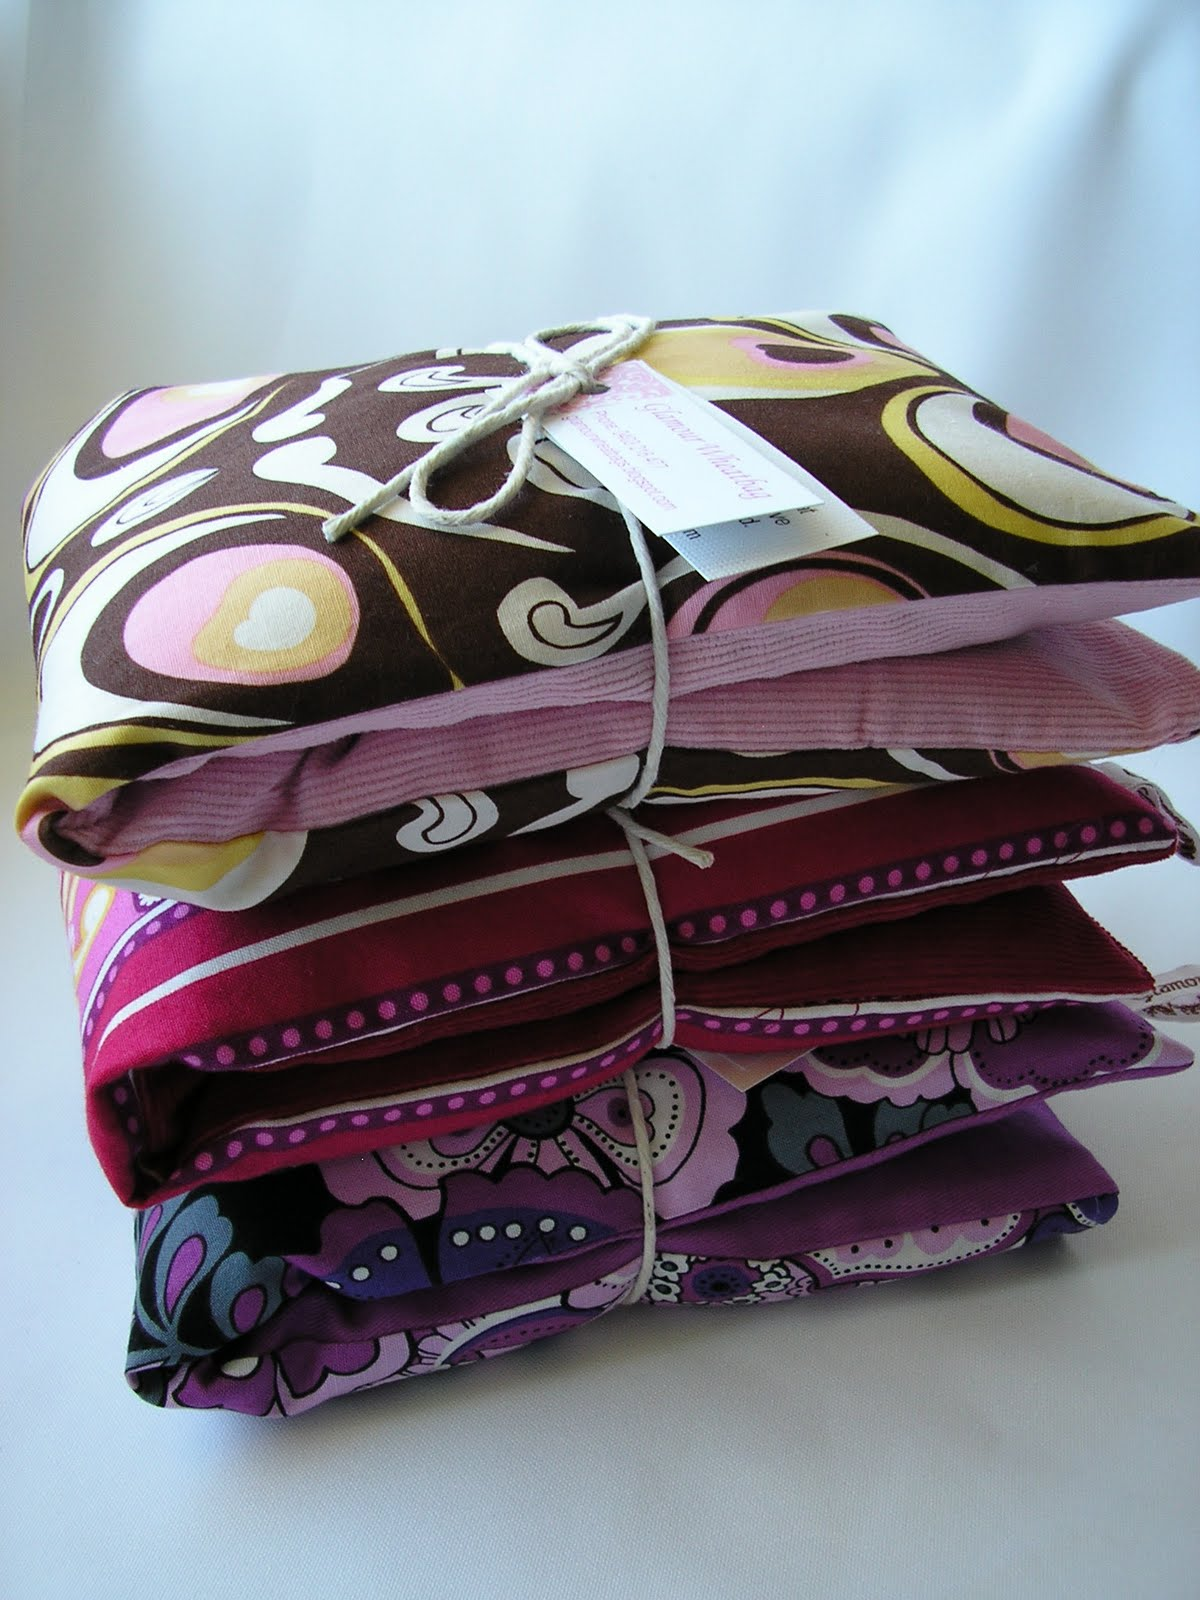 Eye Pillow Australia Glamour Wheat Bags 4 Flat Rate Shipping Anywhere In